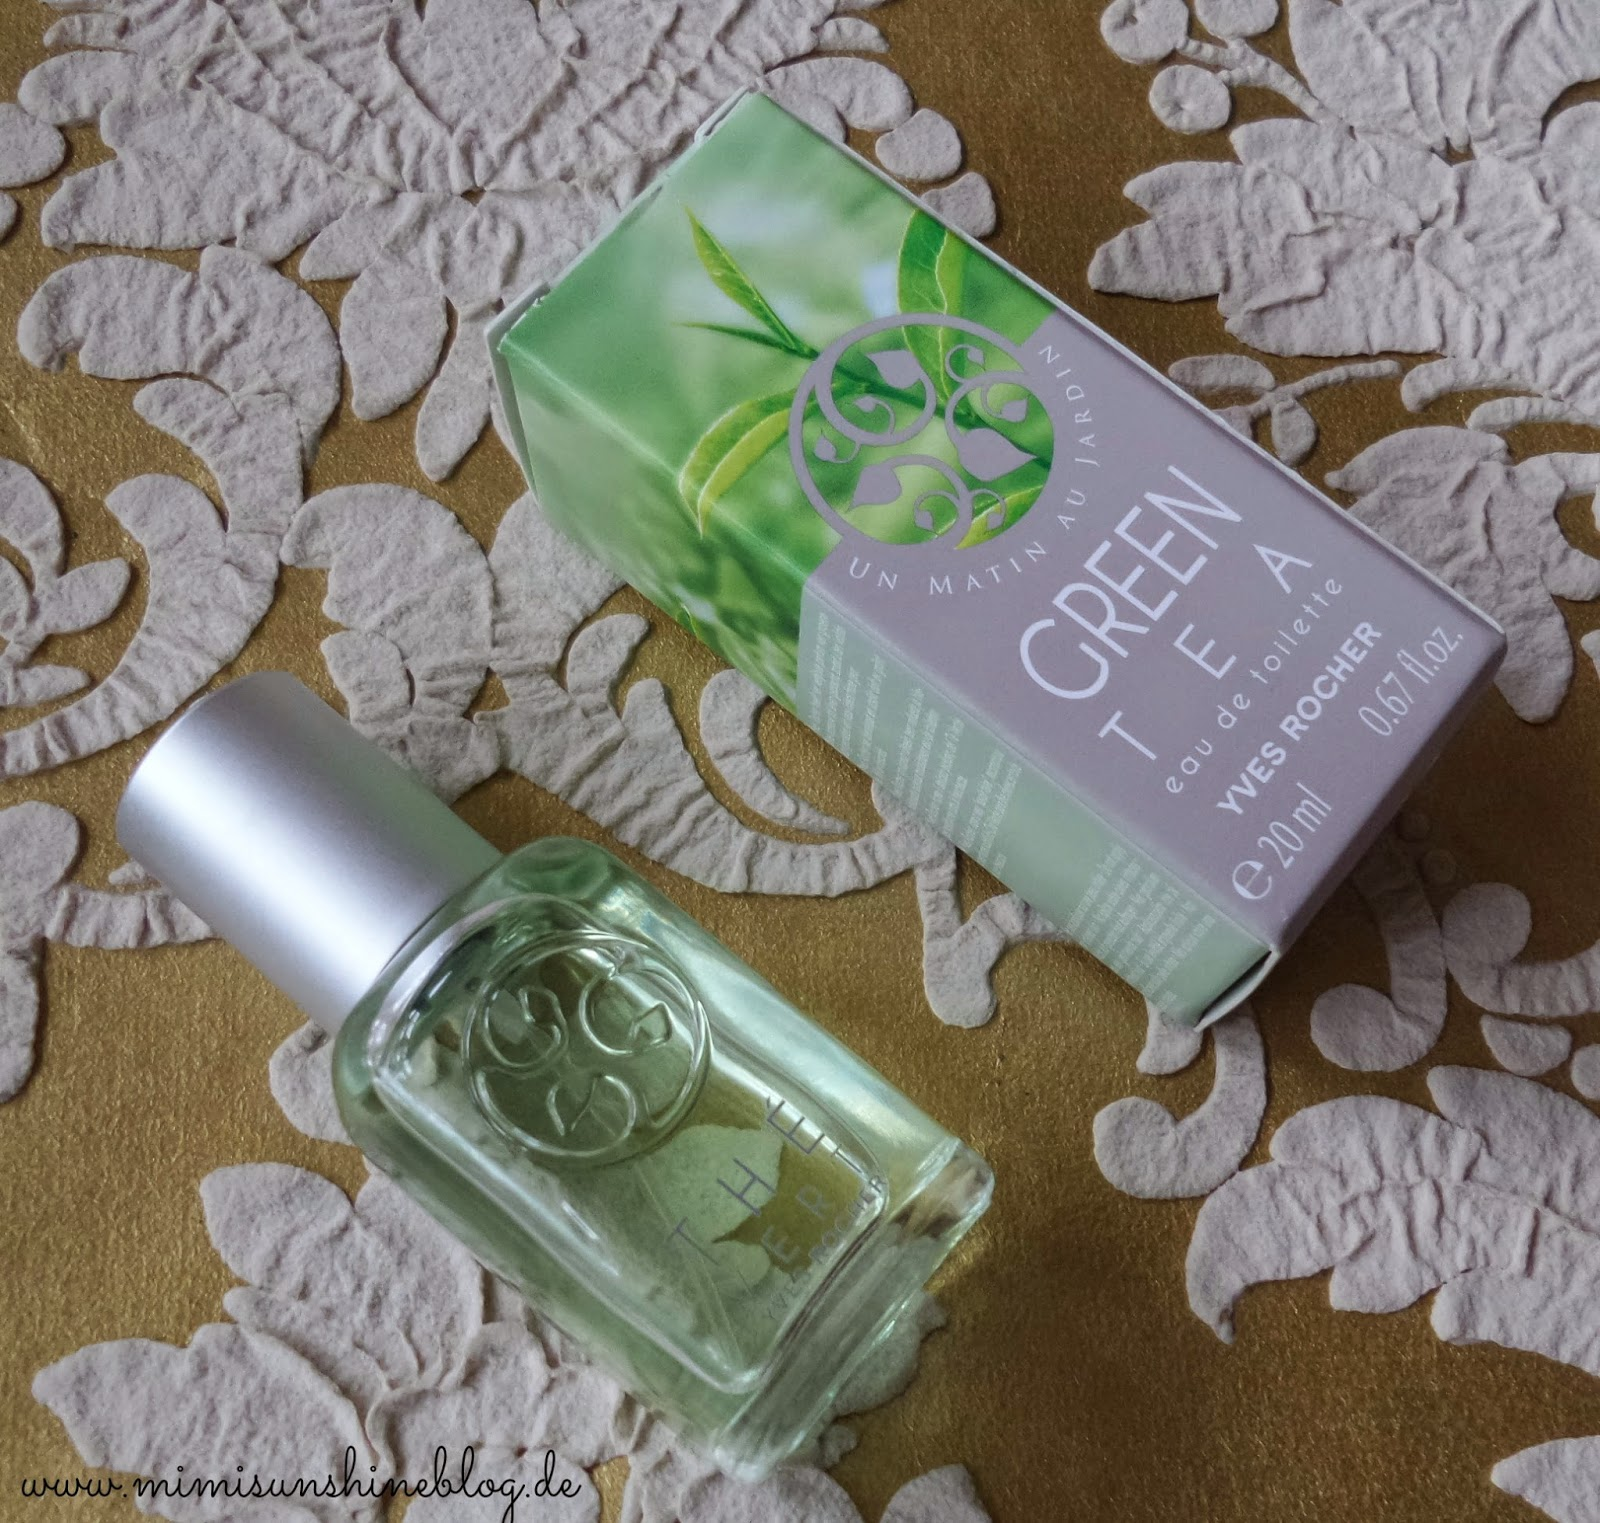 Yves Rocher Green Tea Eau de Toilette